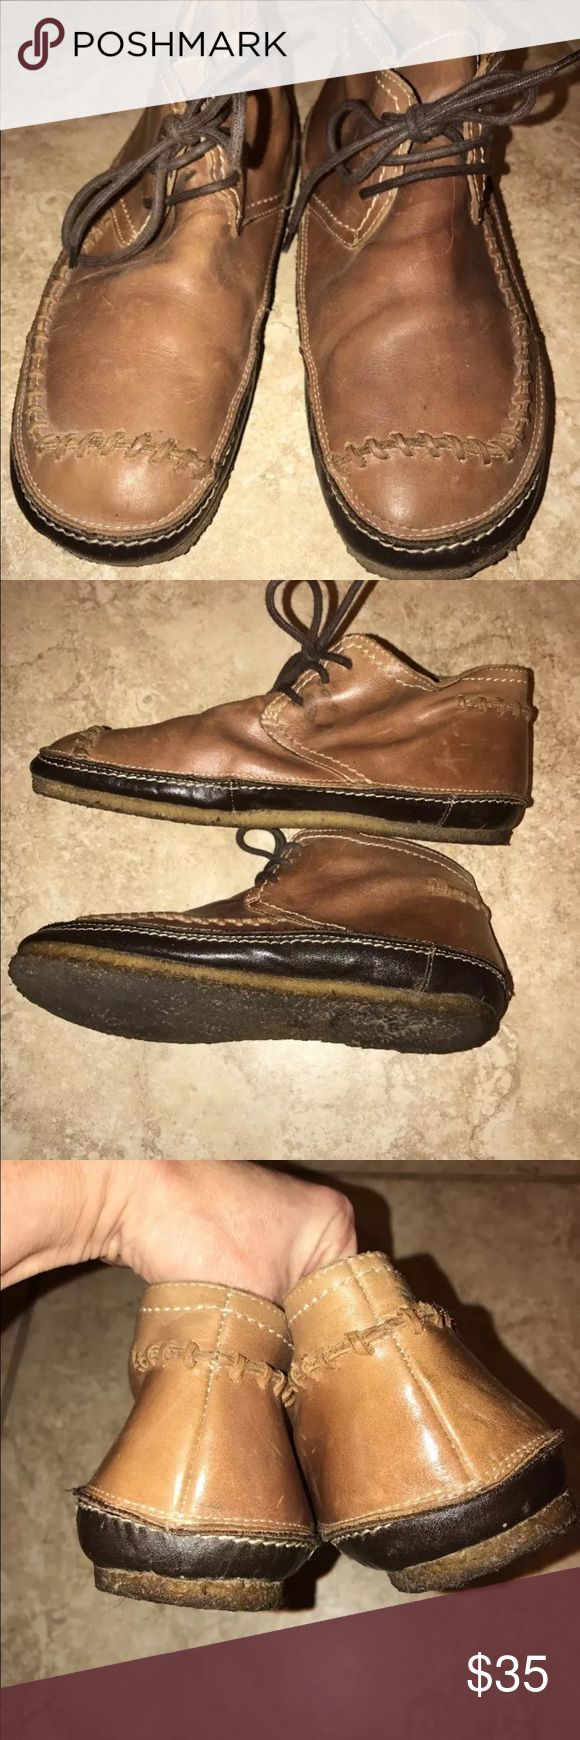 Ask The Missus leather Chukkas 40 9 boots UK 🇬🇧 Ask the Missus chukka boots from London. EU40 US9 Lace Up . Hand stitched. Used but in great condition. Popular British co. ask the missus Shoes Chukka Boots